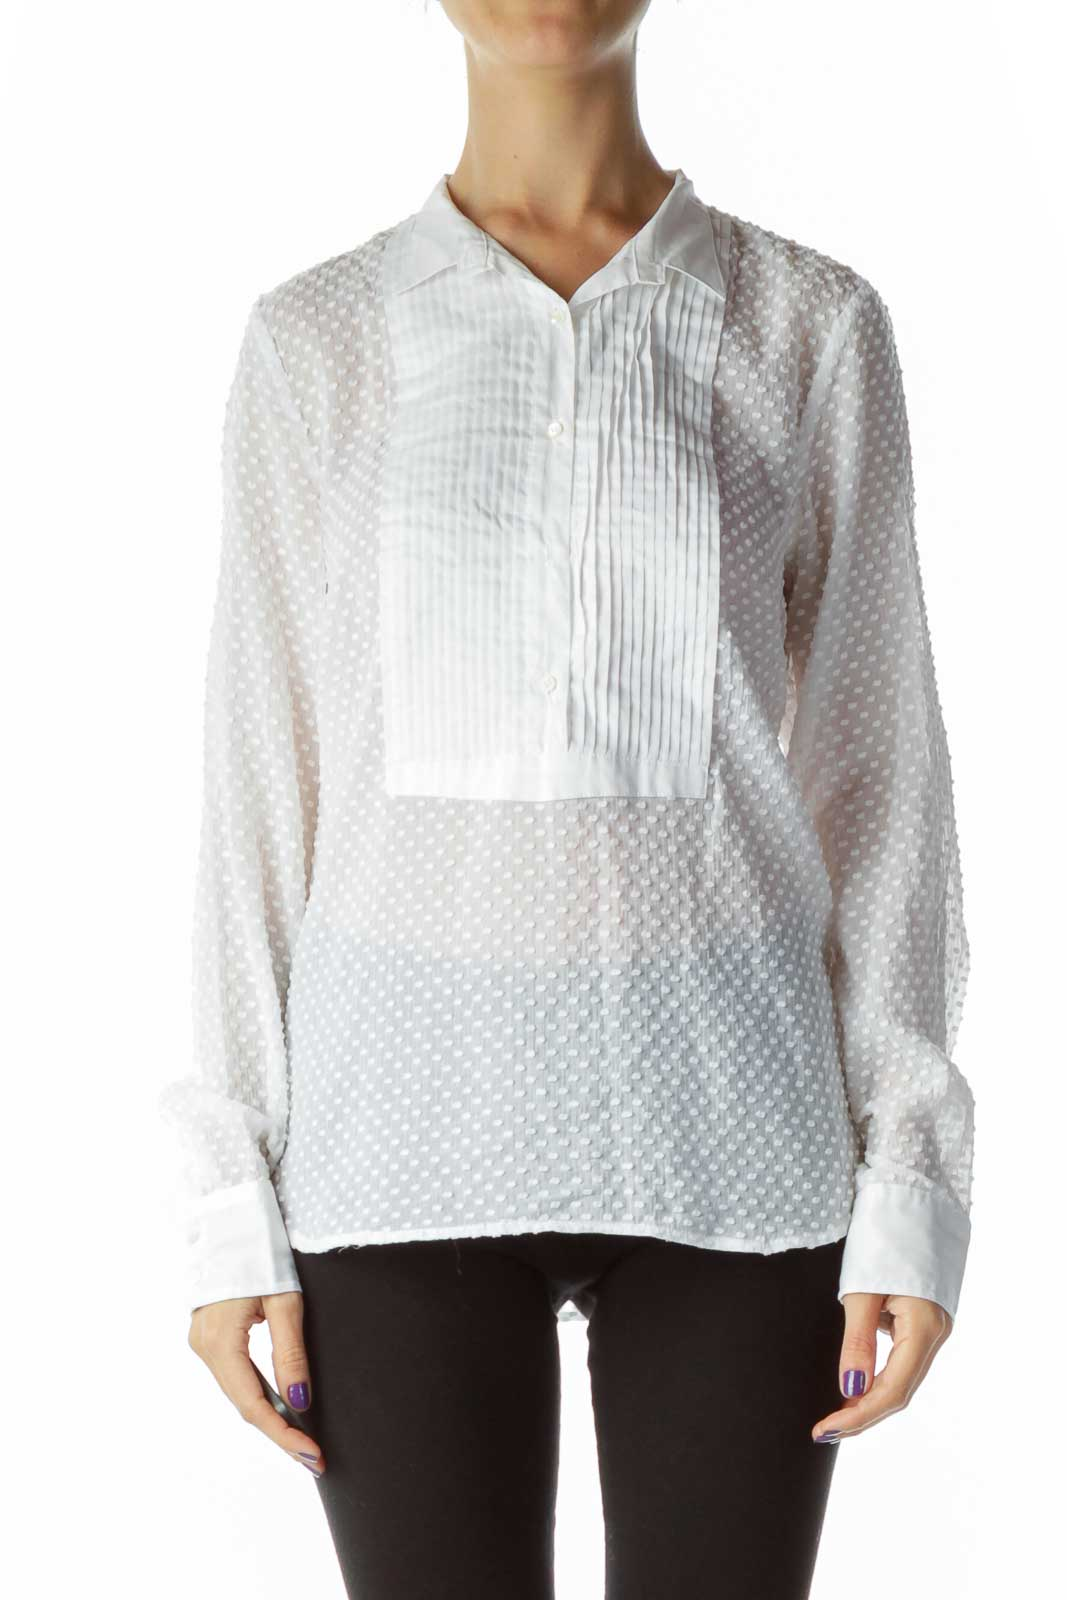 White Sheet Polka Dot Pleat Detailed Textured Shirt